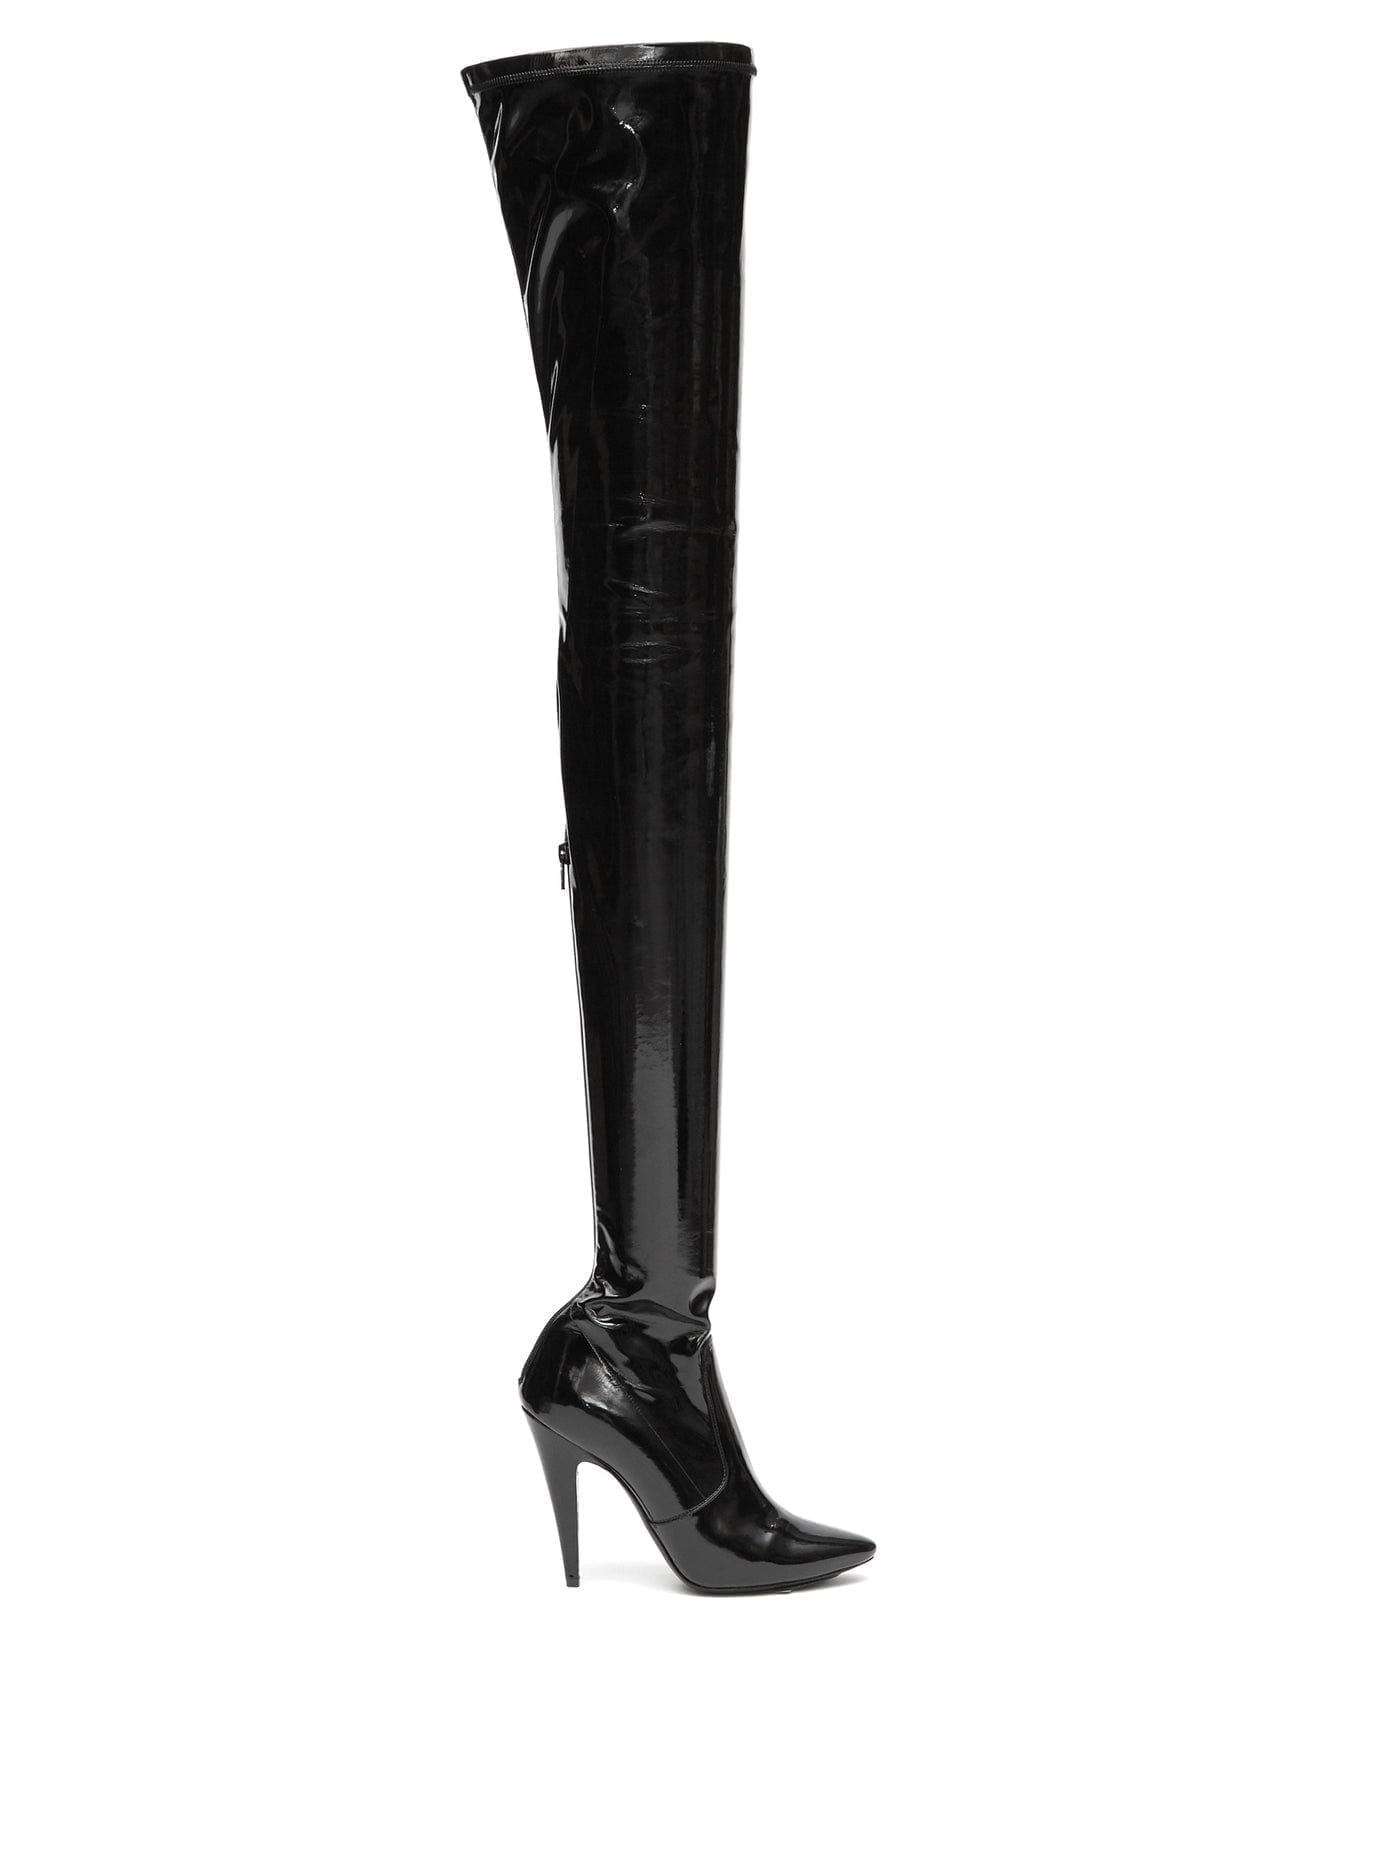 SAINT LAURENT Aylah 110 Over-the-knee Vinyl Boots